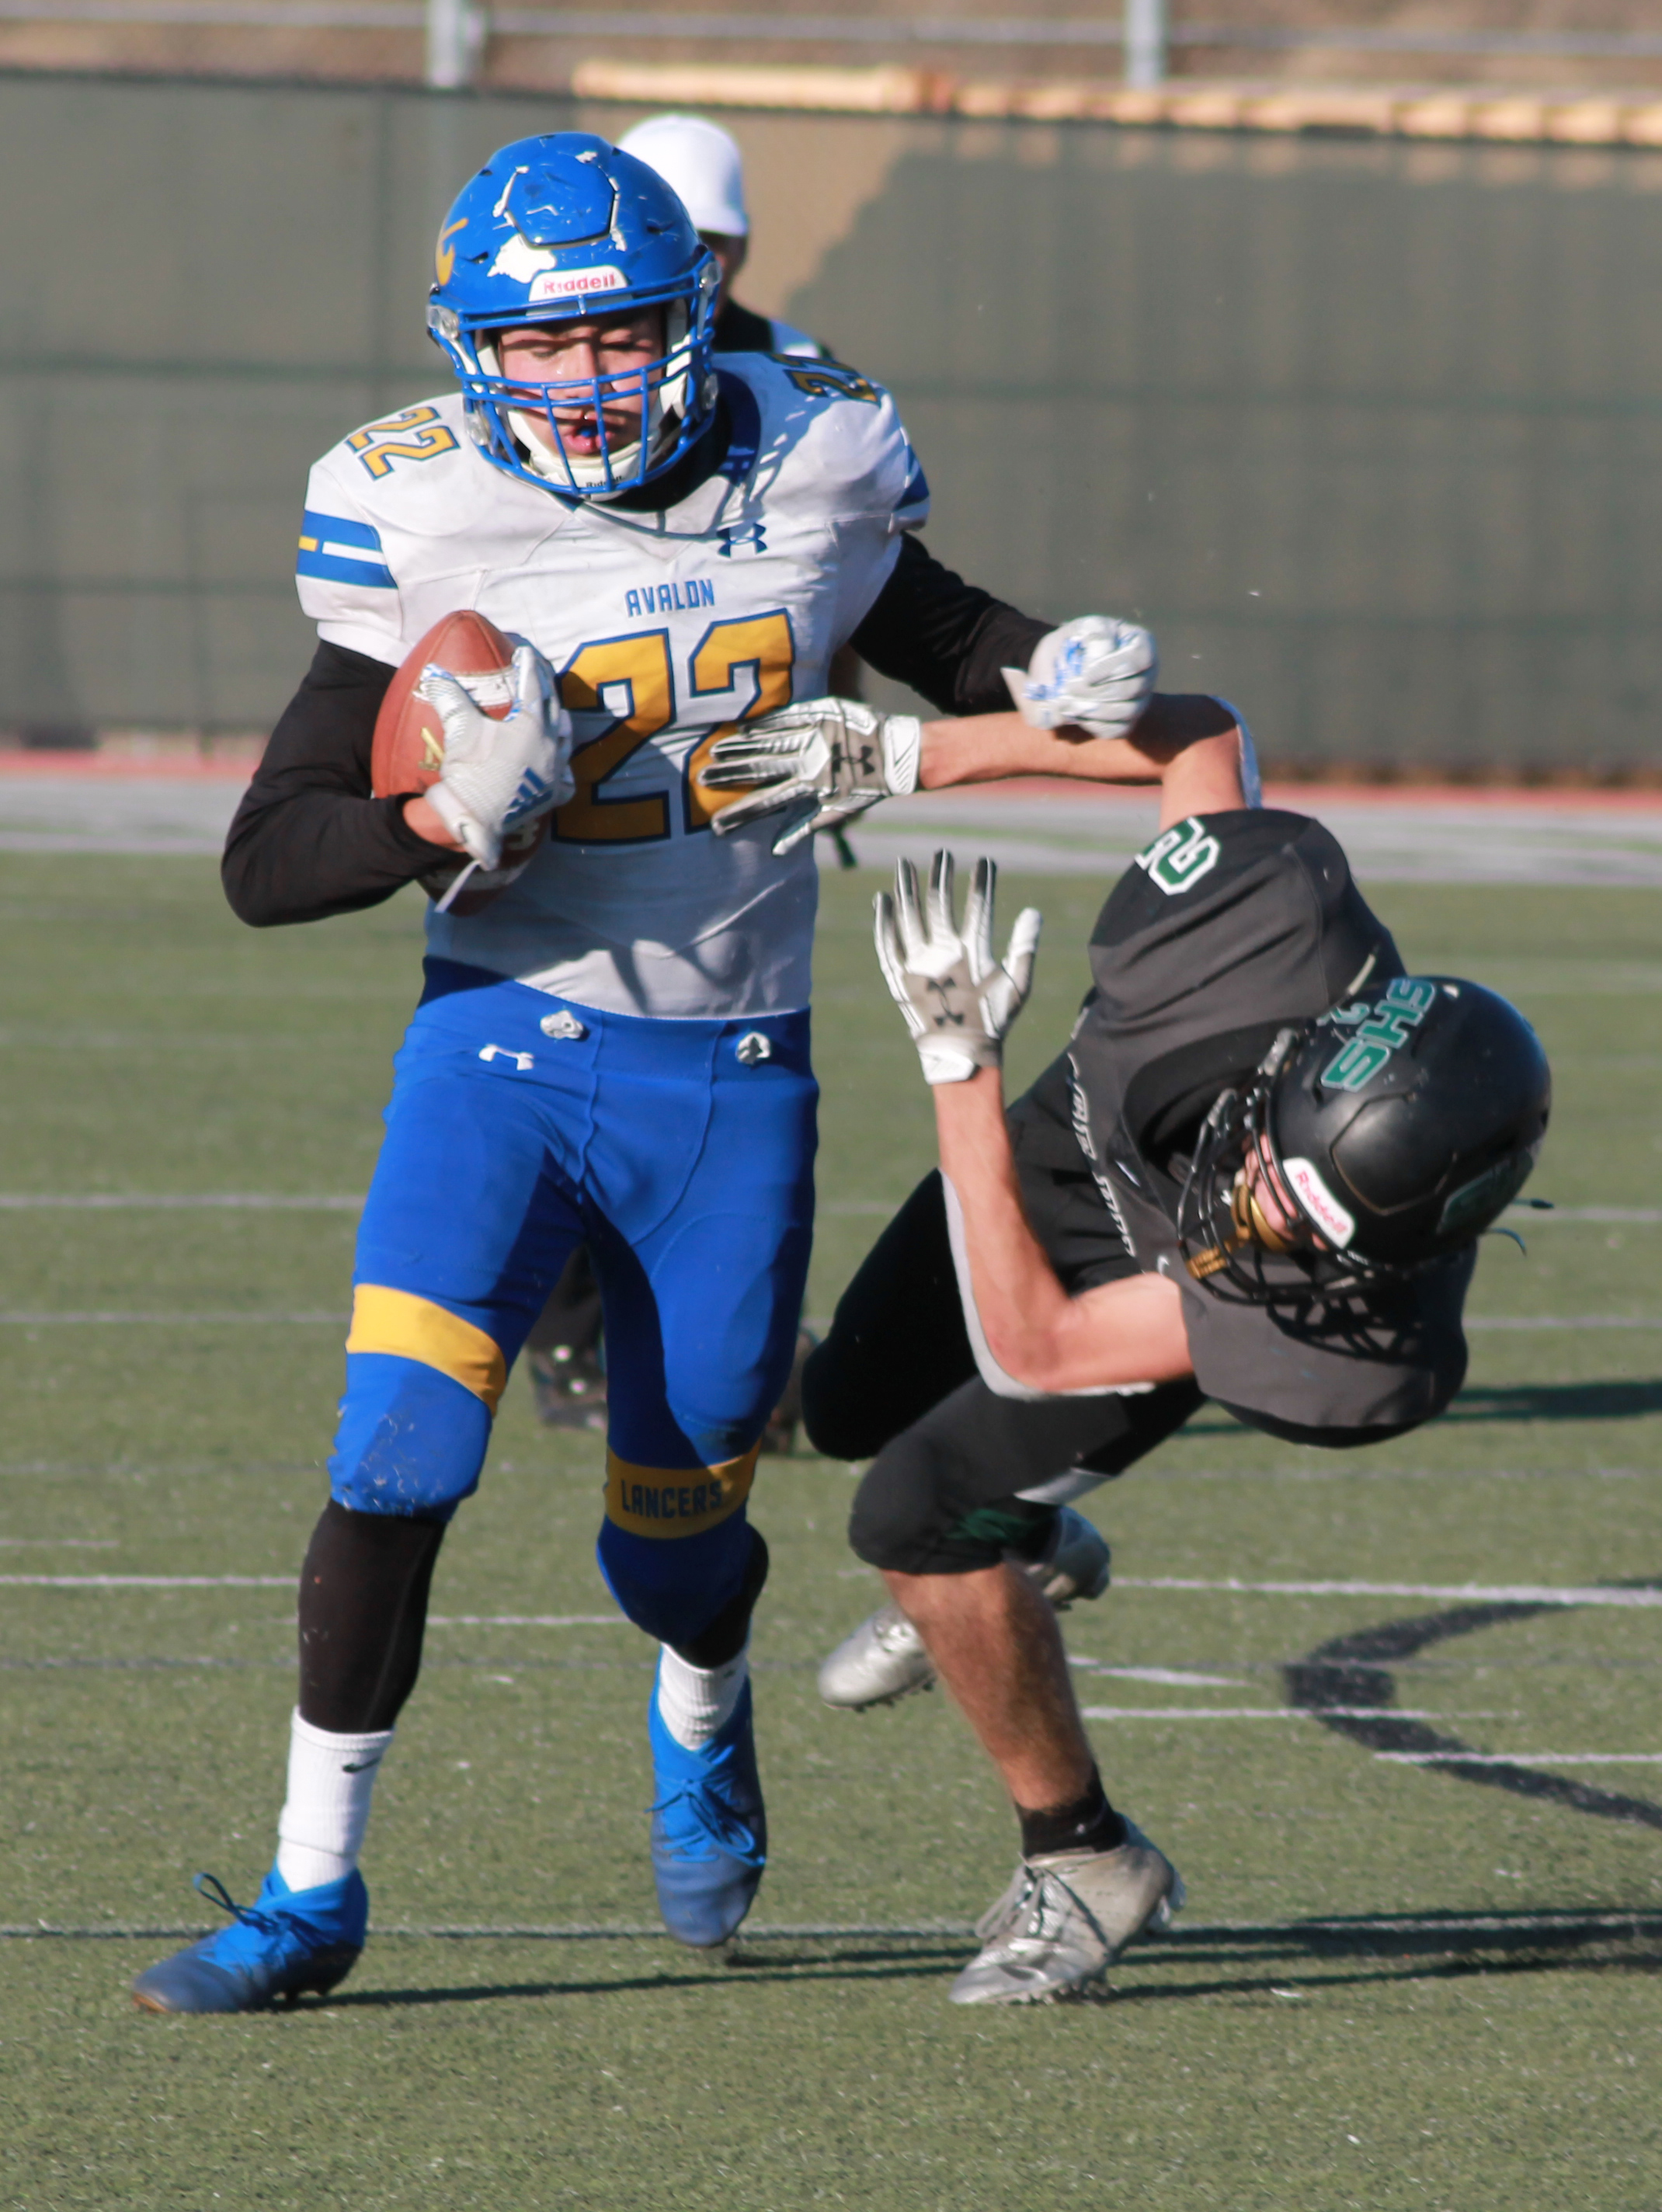 Lancers drop chance at League title - The Catalina Inslader